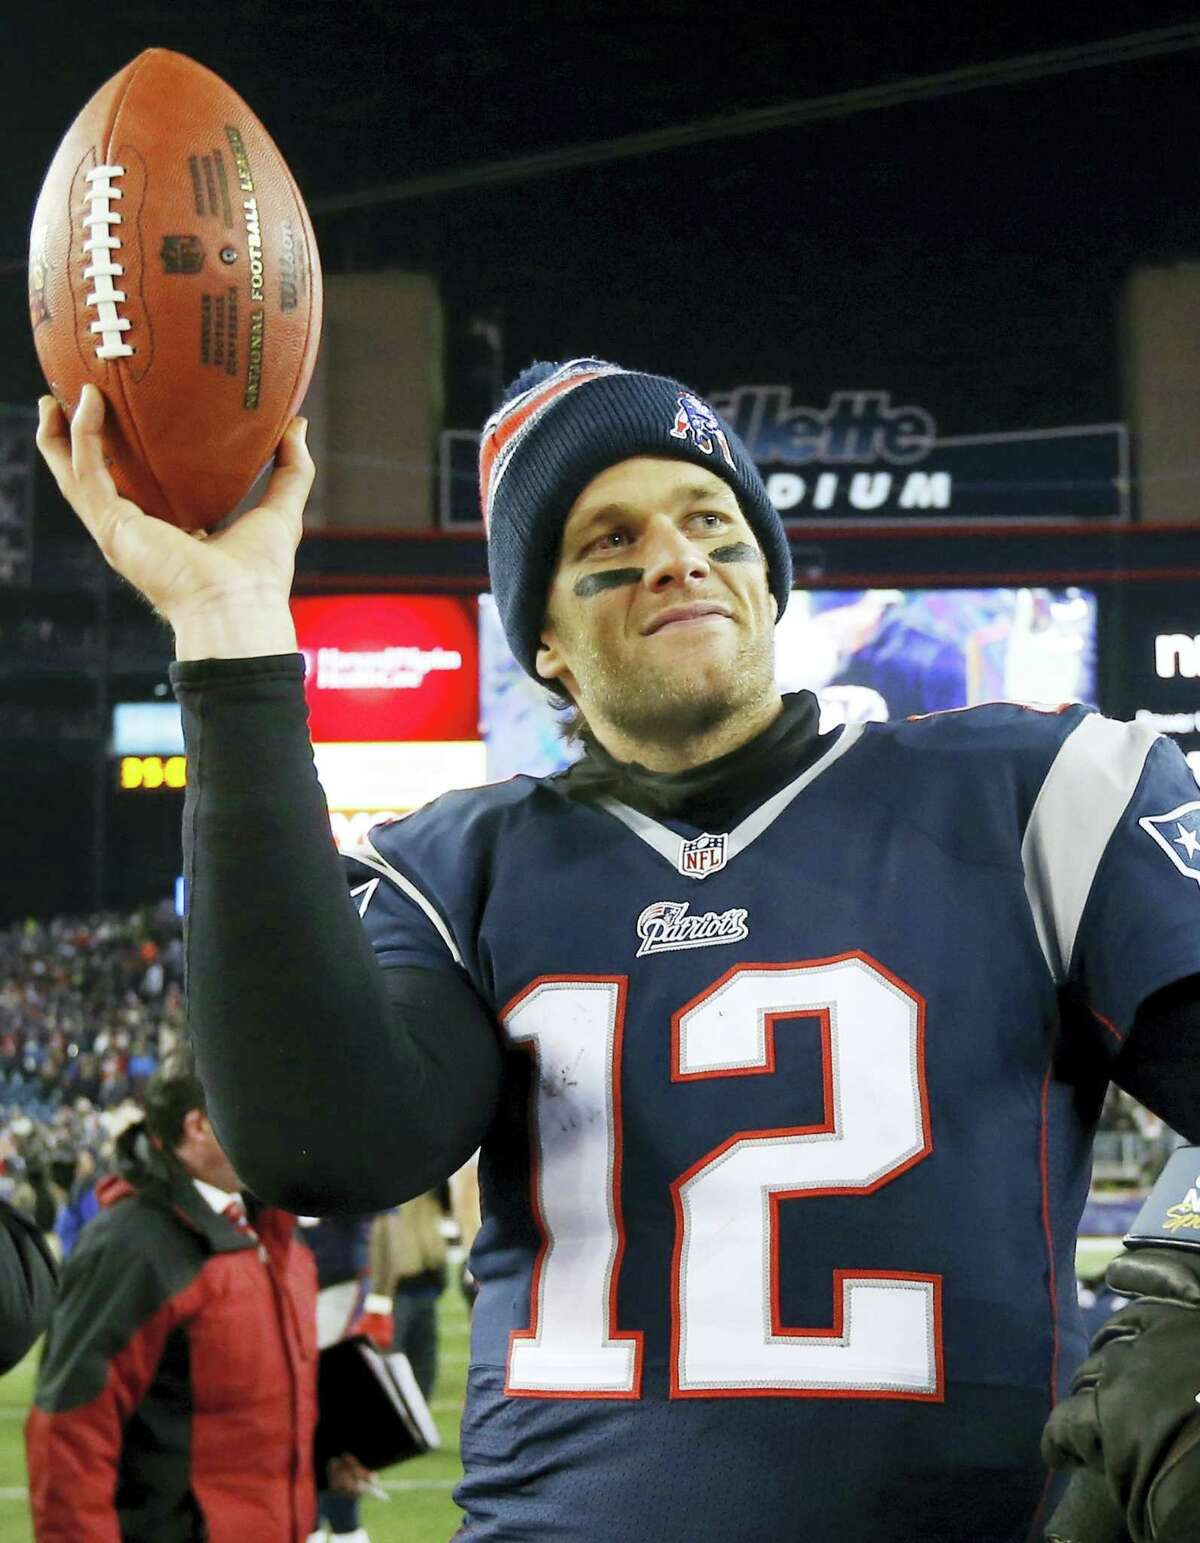 In this Jan. 10, 2015, file photo, New England Patriots quarterback Tom Brady holds up the game ball after an NFL divisional playoff football game against the Baltimore Ravens in Foxborough, Mass. On Wednesday, July 13, 2016, a federal appeals court has rejected Tom Brady's attempt to get a new hearing on his suspension. Brady was asking for the full 2nd U.S. Circuit Court of Appeals to hear the case. In April, a three-judge panel said that NFL commissioner Roger Goodell was within his powers when he suspended the star quarterback four games for his role in a scheme to doctor the footballs used in a Jan. 18, 2015, playoff game. (